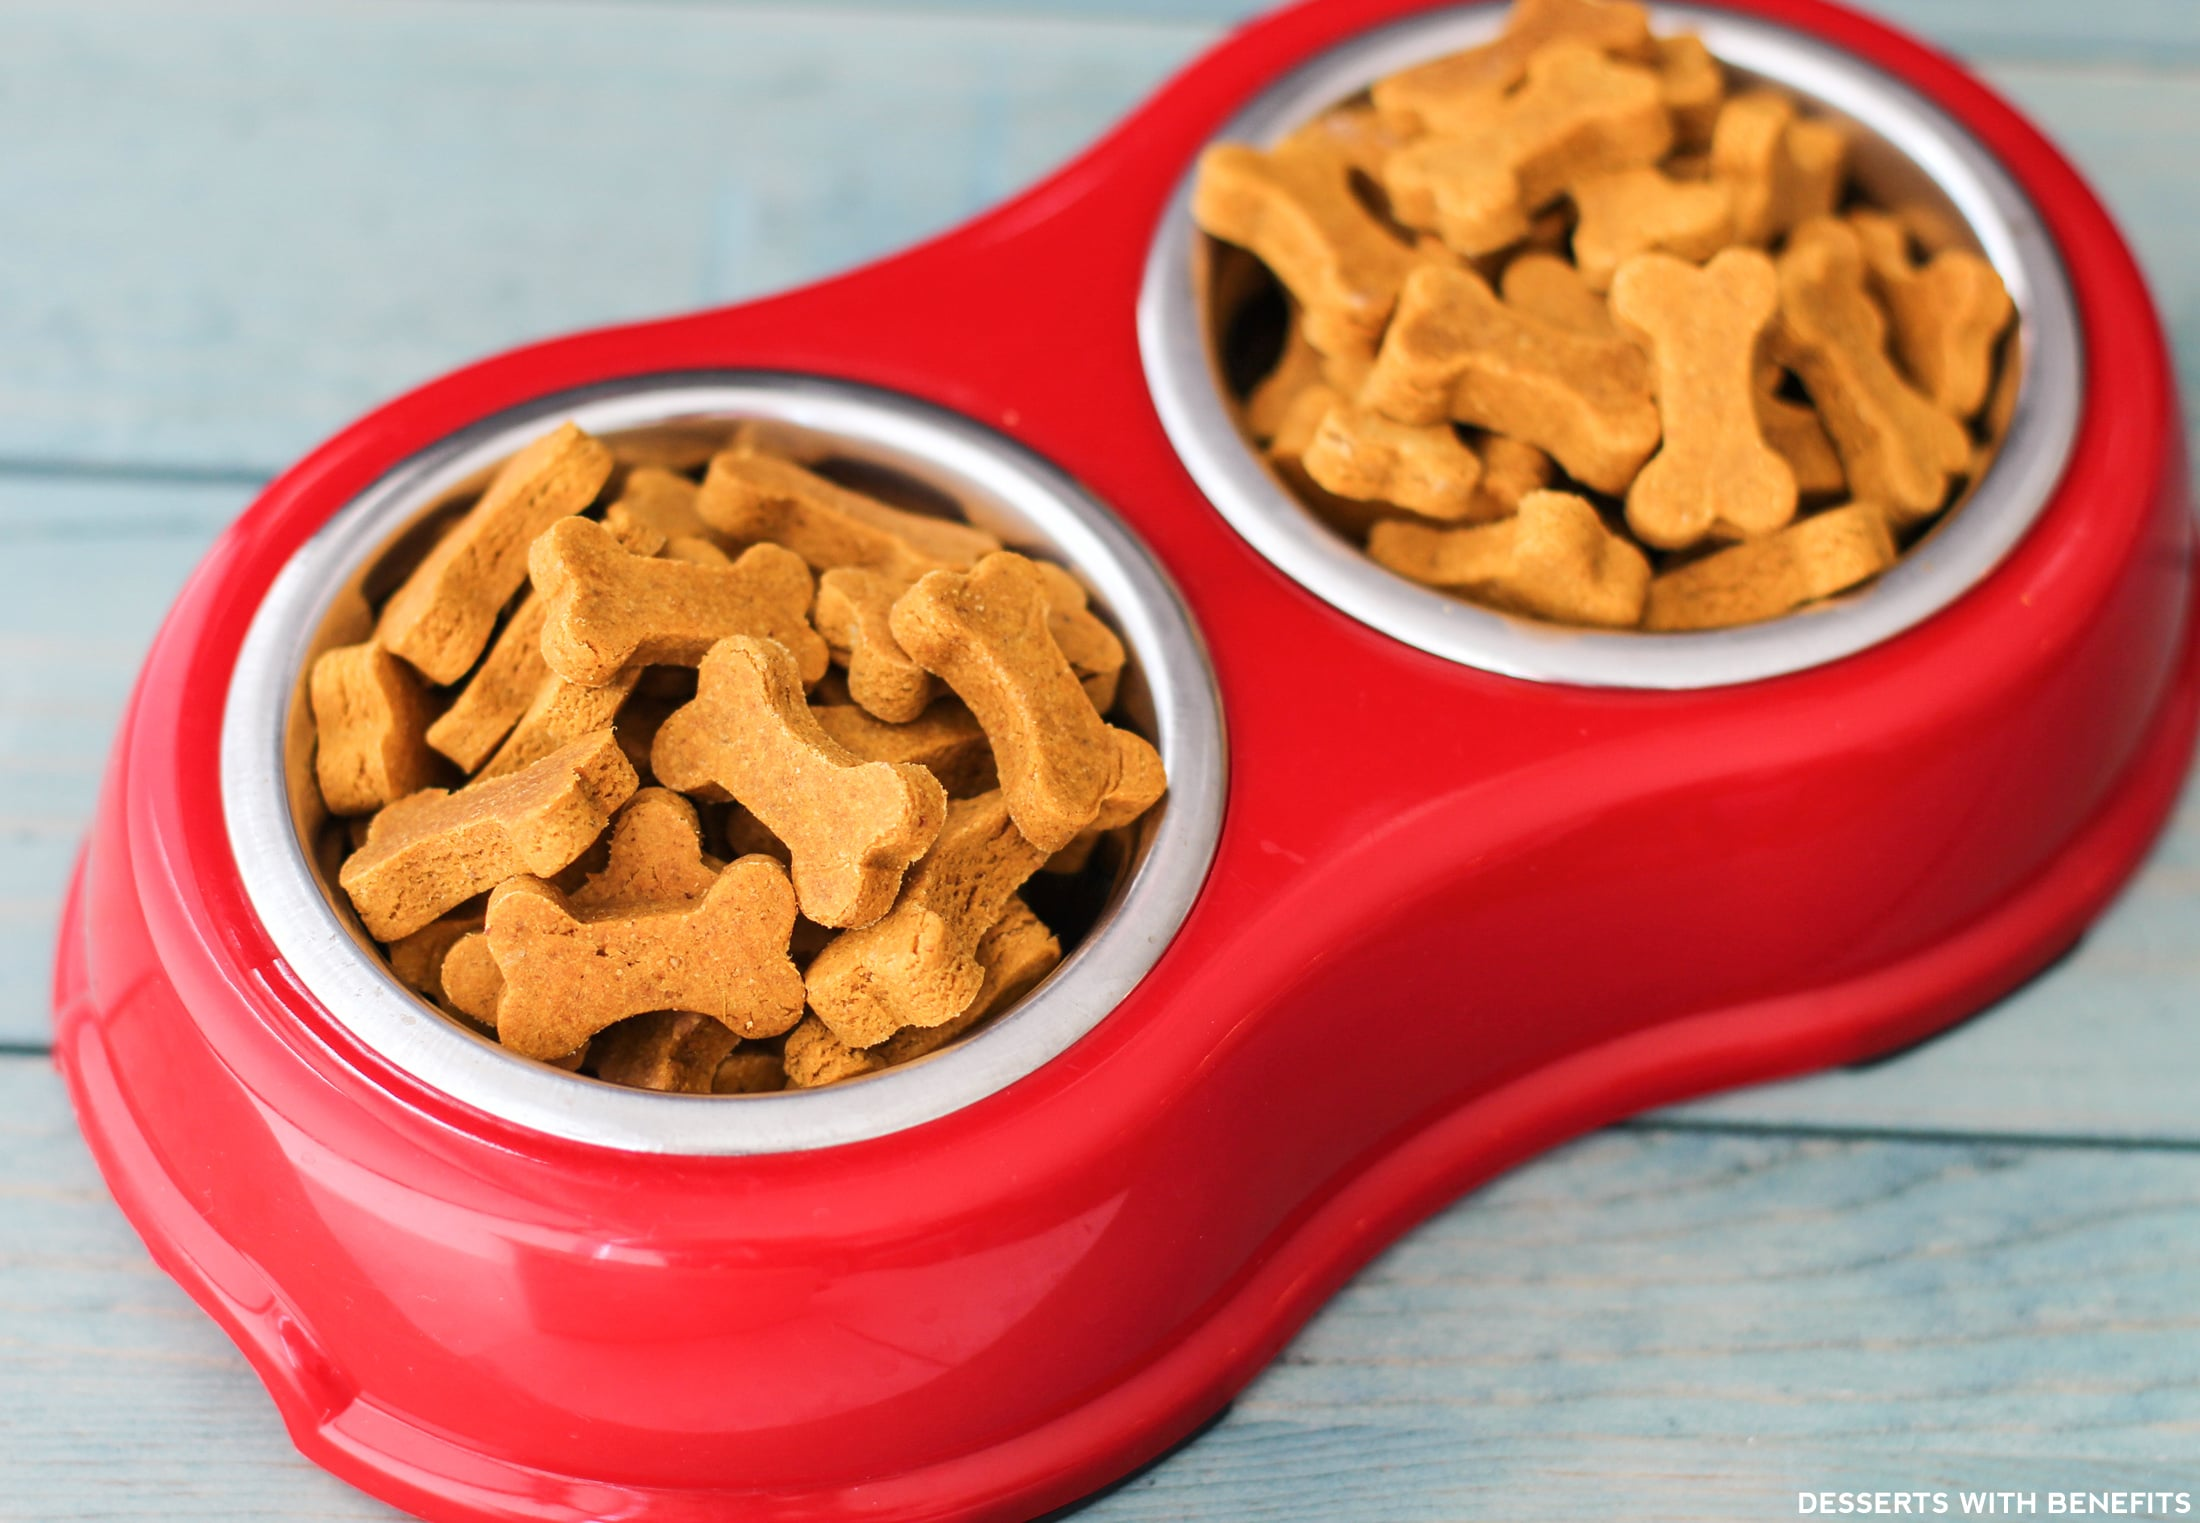 Healthy Homemade Peanut Butter Pumpkin Dog Treats (sugar free, gluten free, dairy free, eggless, vegan) - Healthy Dessert Recipes at Desserts with Benefits